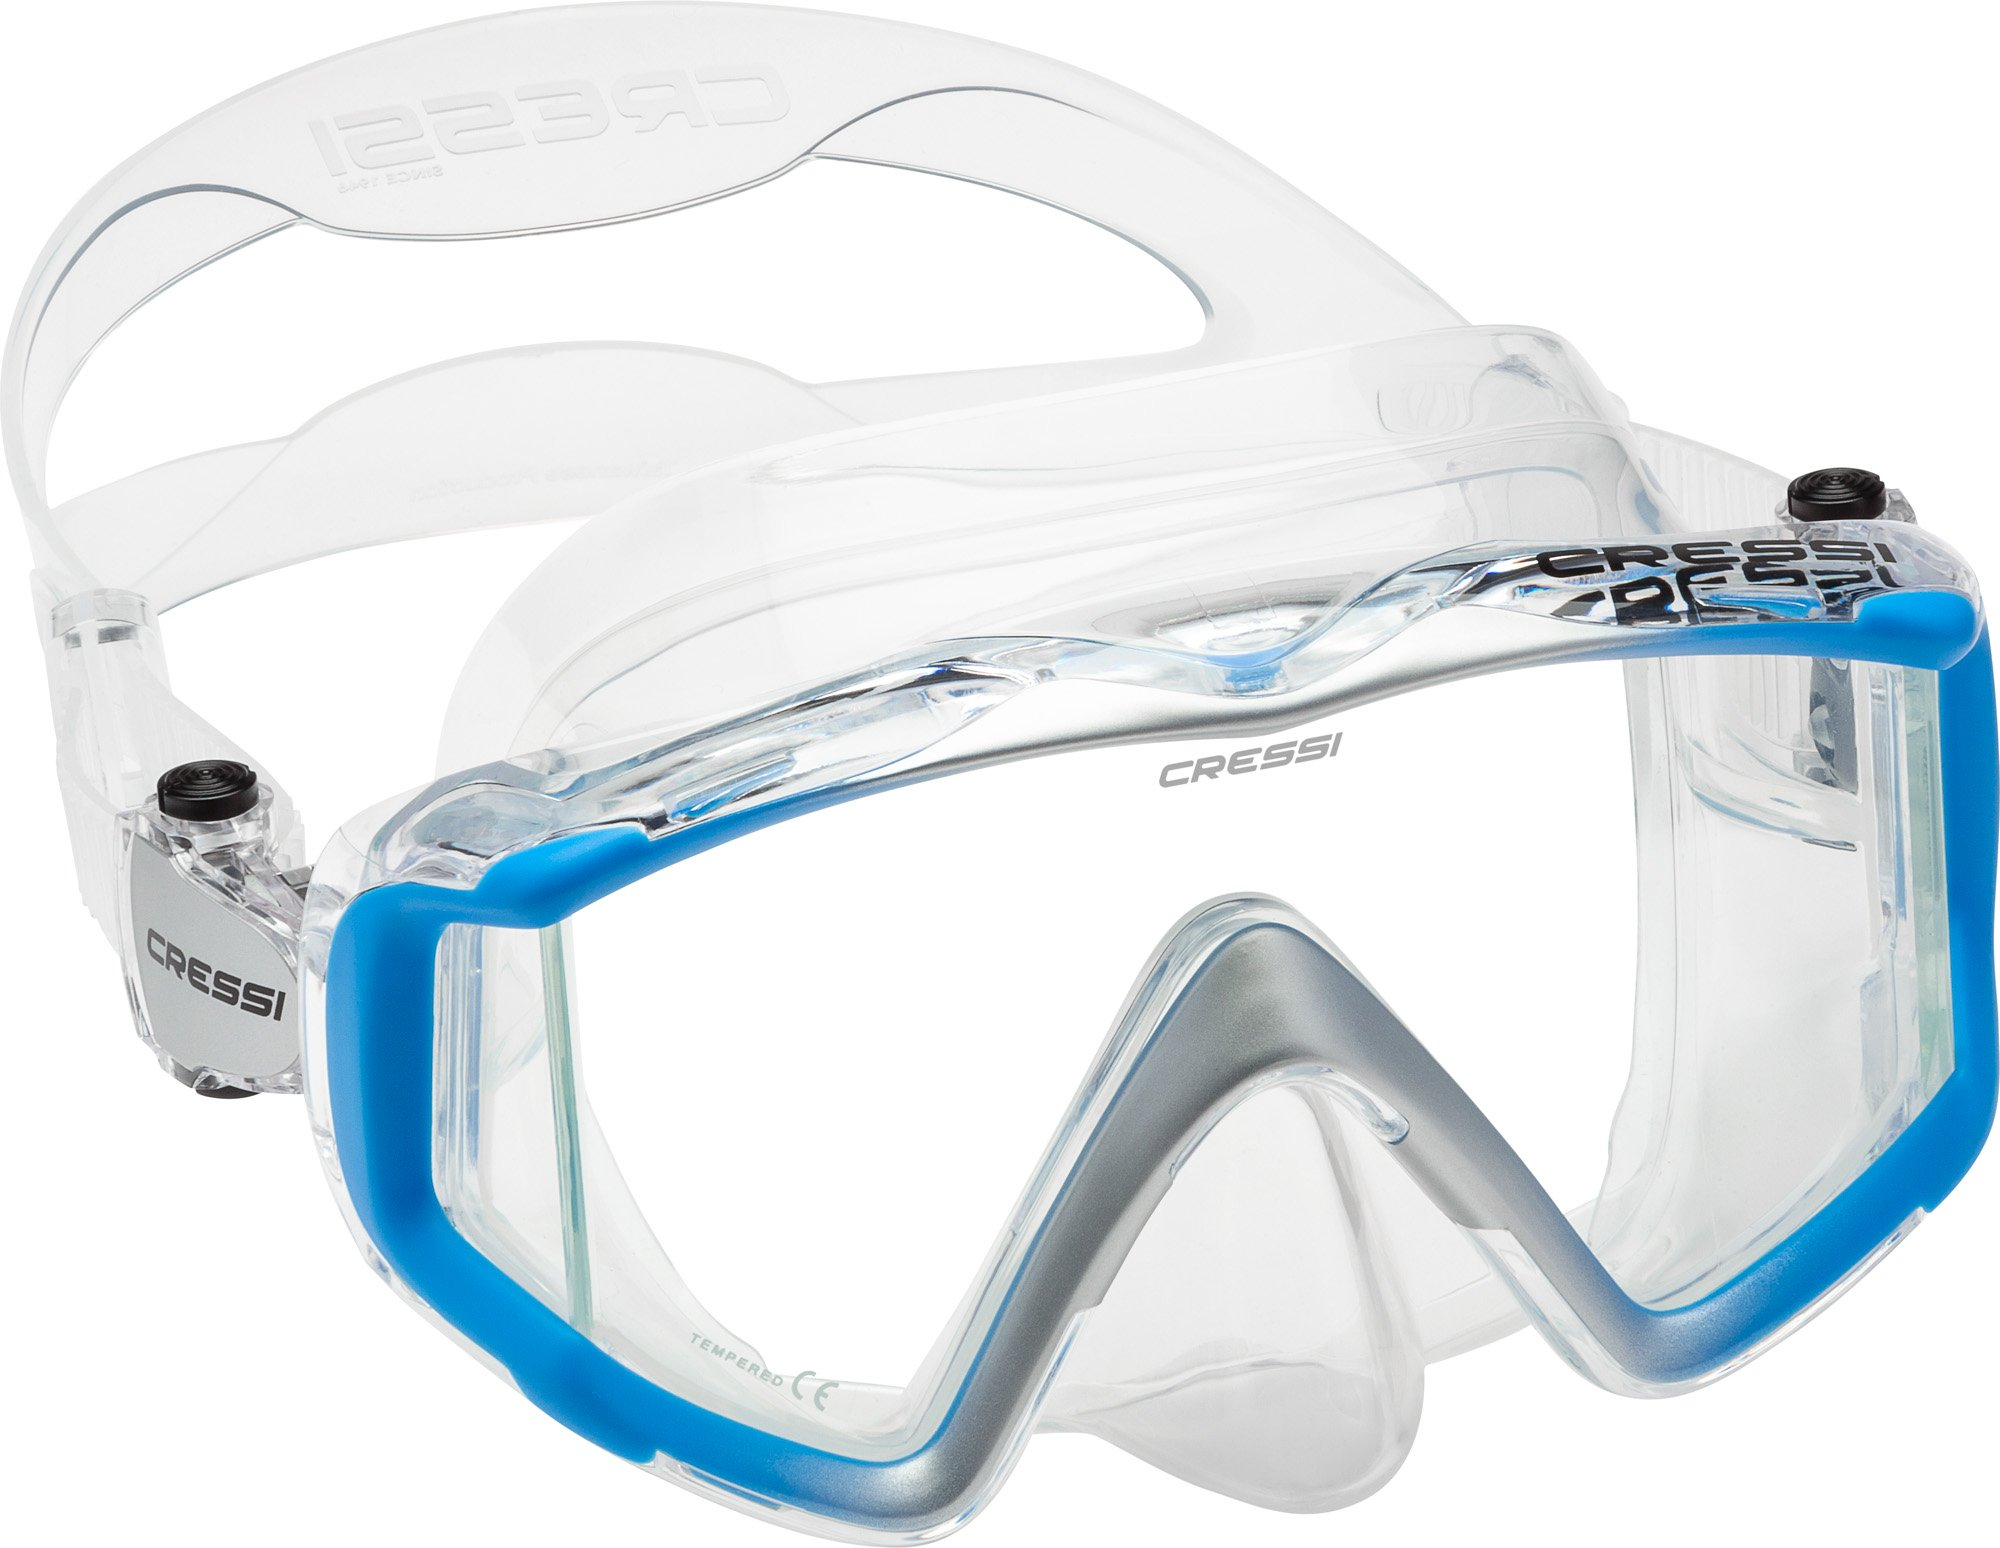 Cressi Liberty Triside Spe Diving Mask, Clear/Blue/Silver